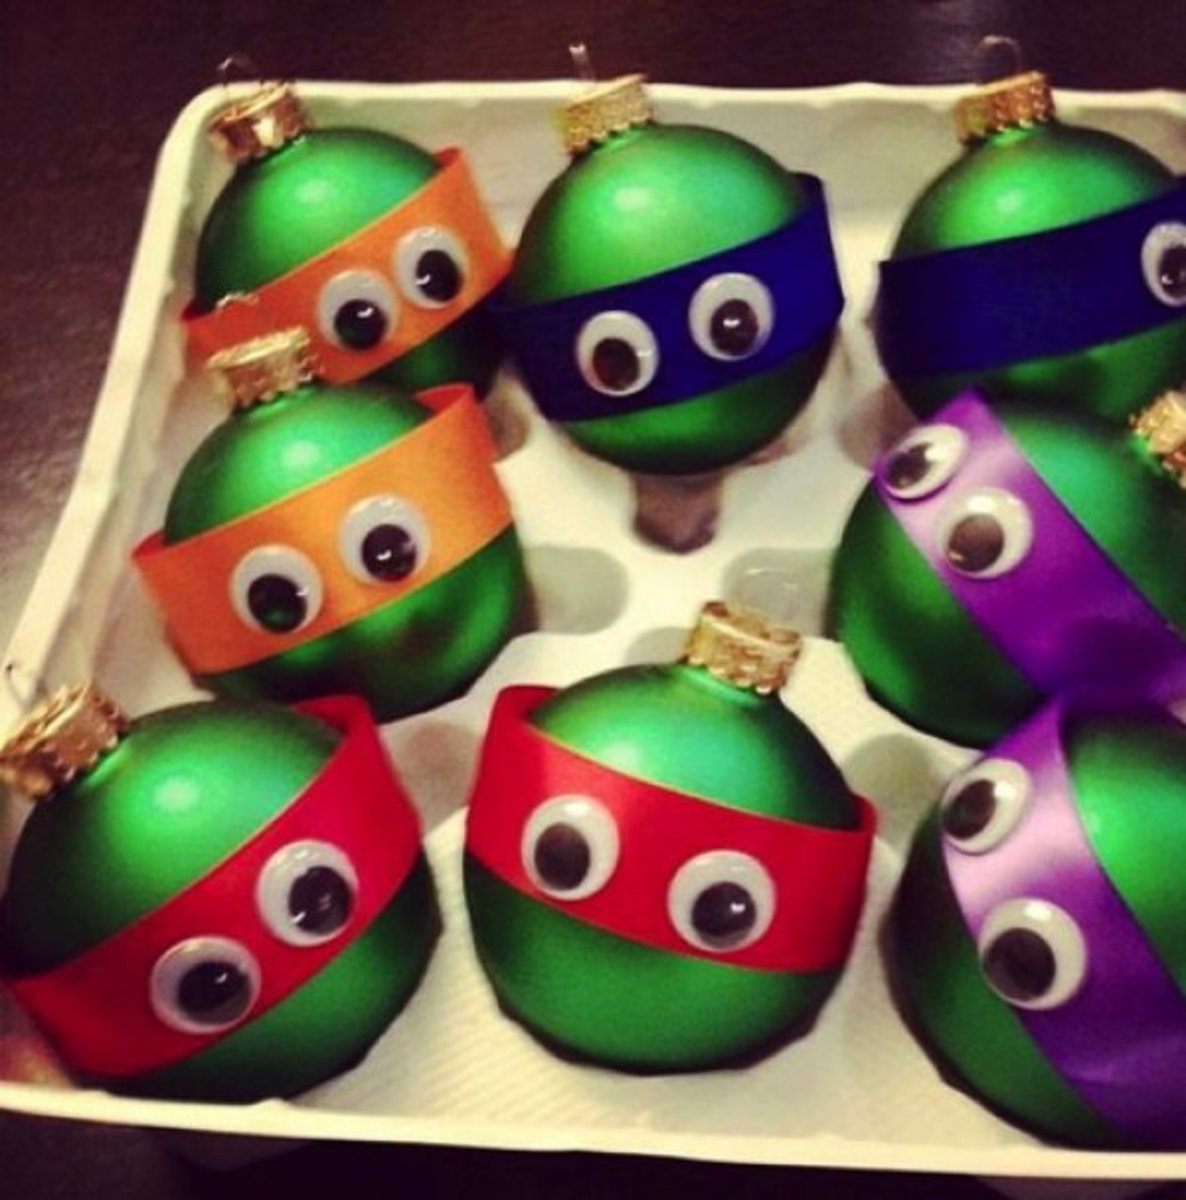 NINJA TURTLES BALL ORNAMENTS, DIY